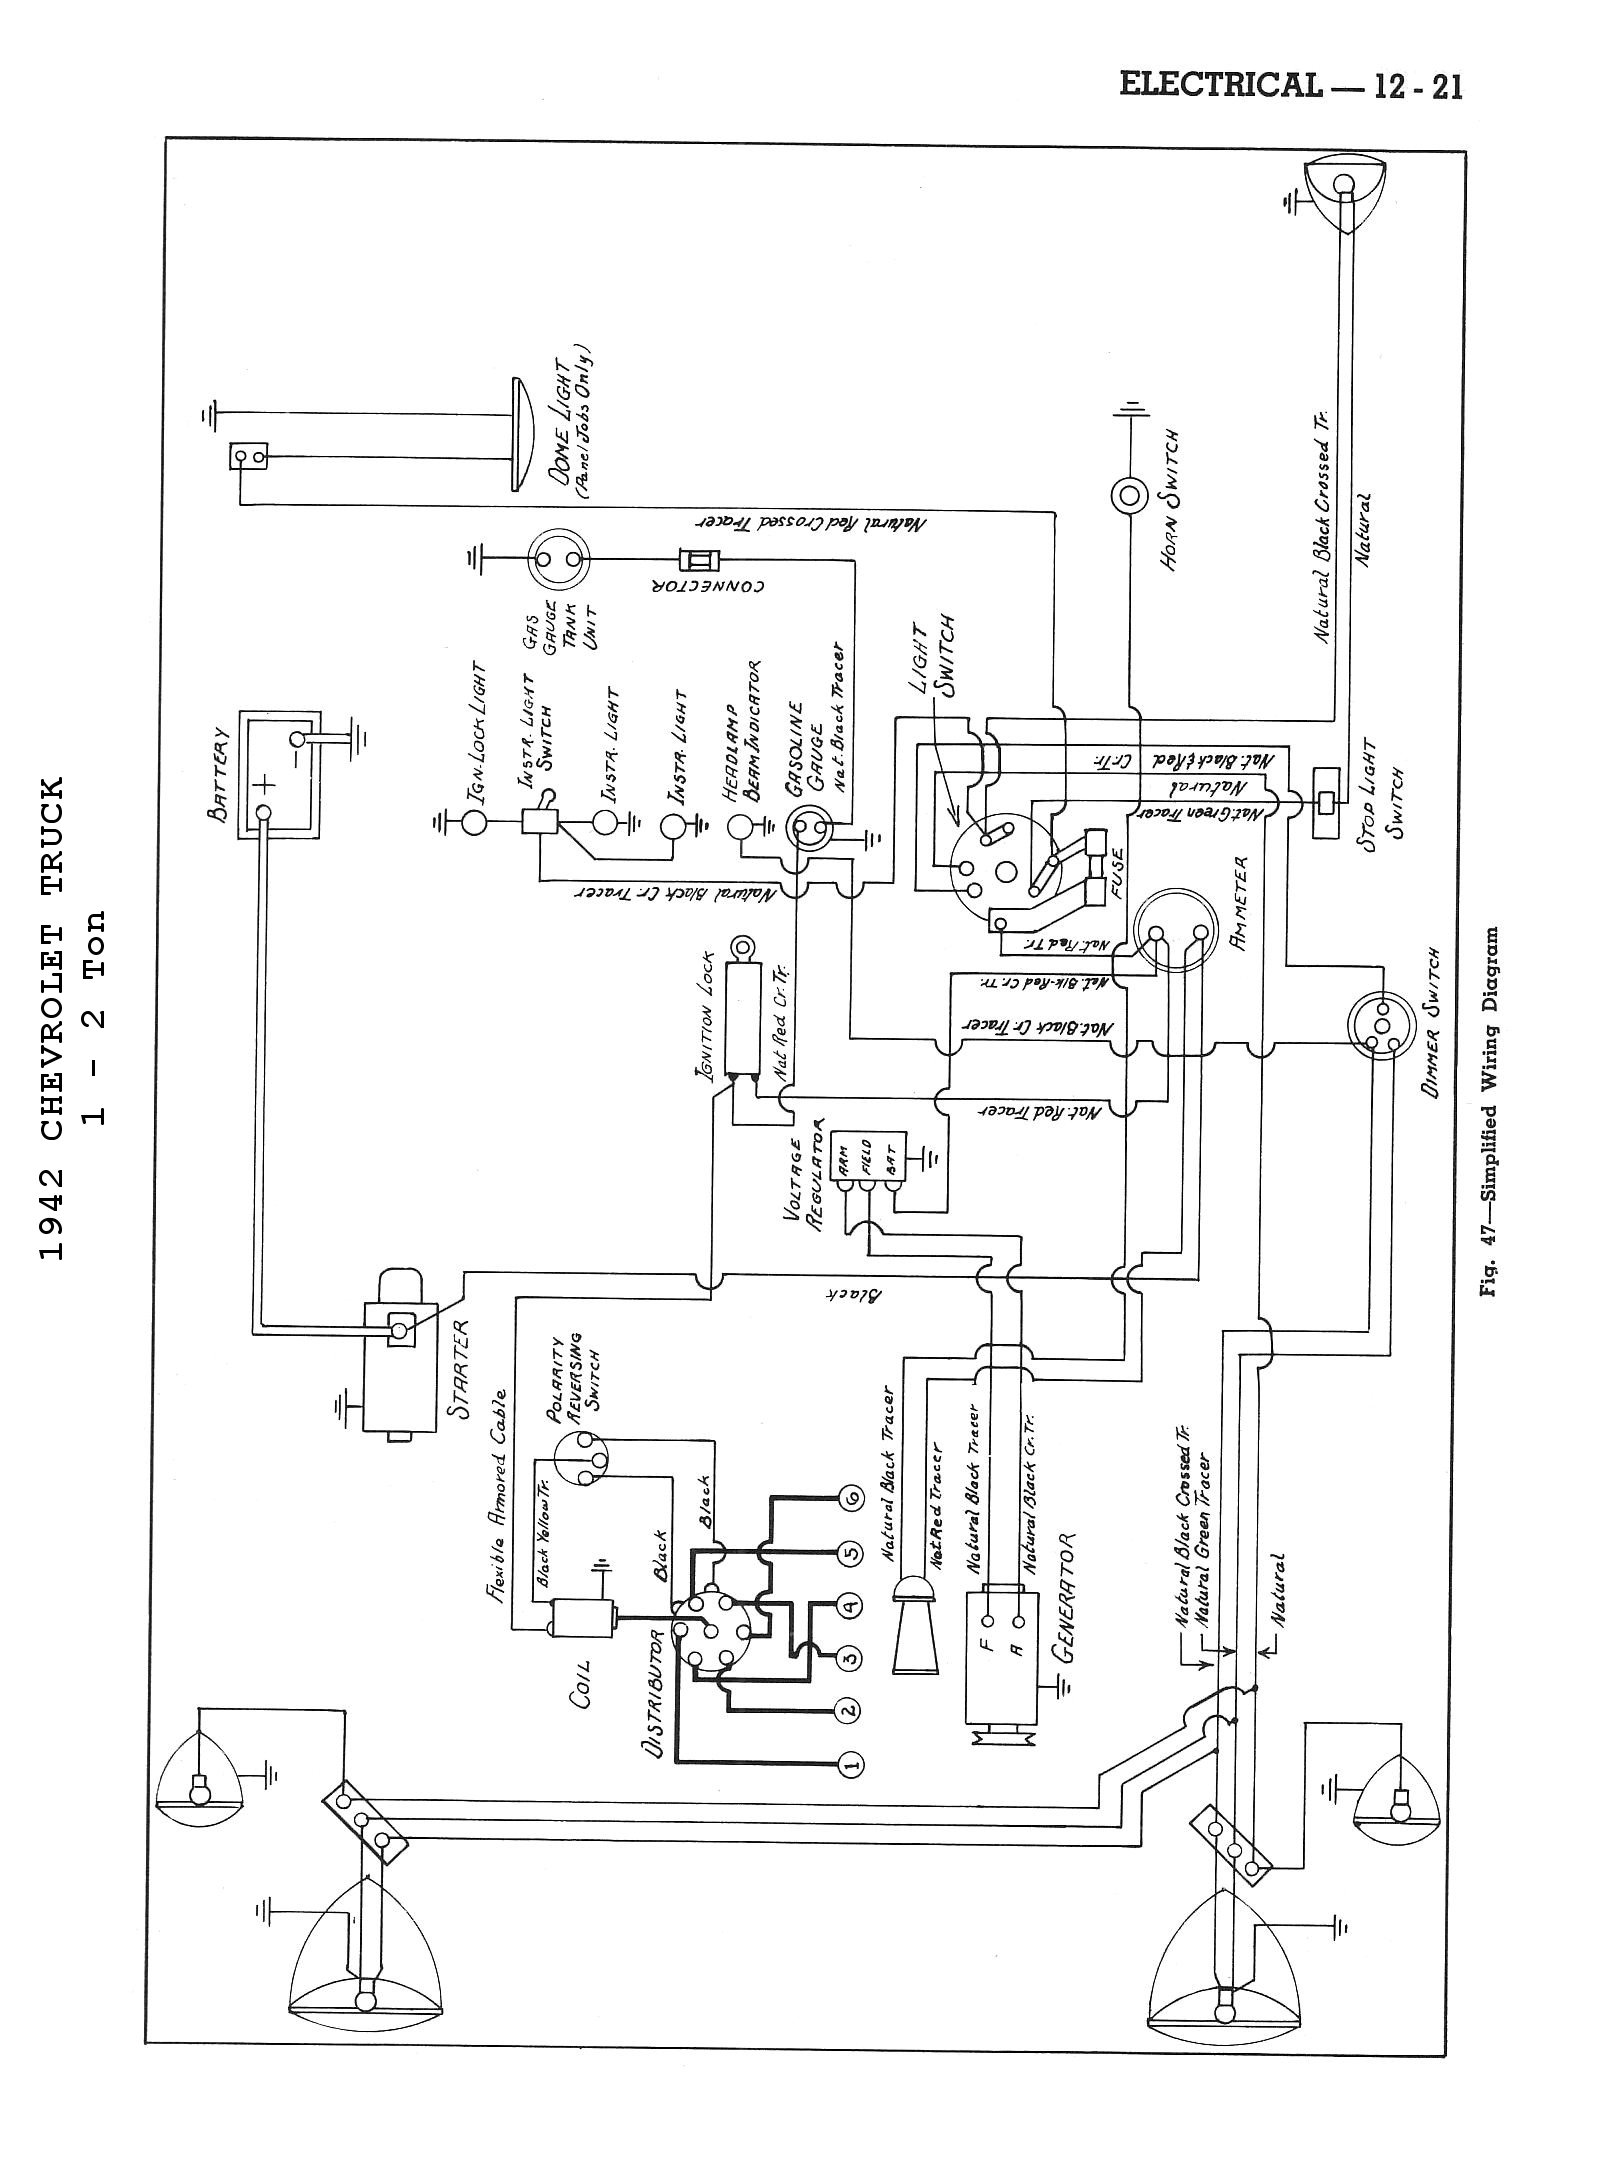 42cm4x2t1221 chevy wiring diagrams Turn Signal Switch Wiring at panicattacktreatment.co